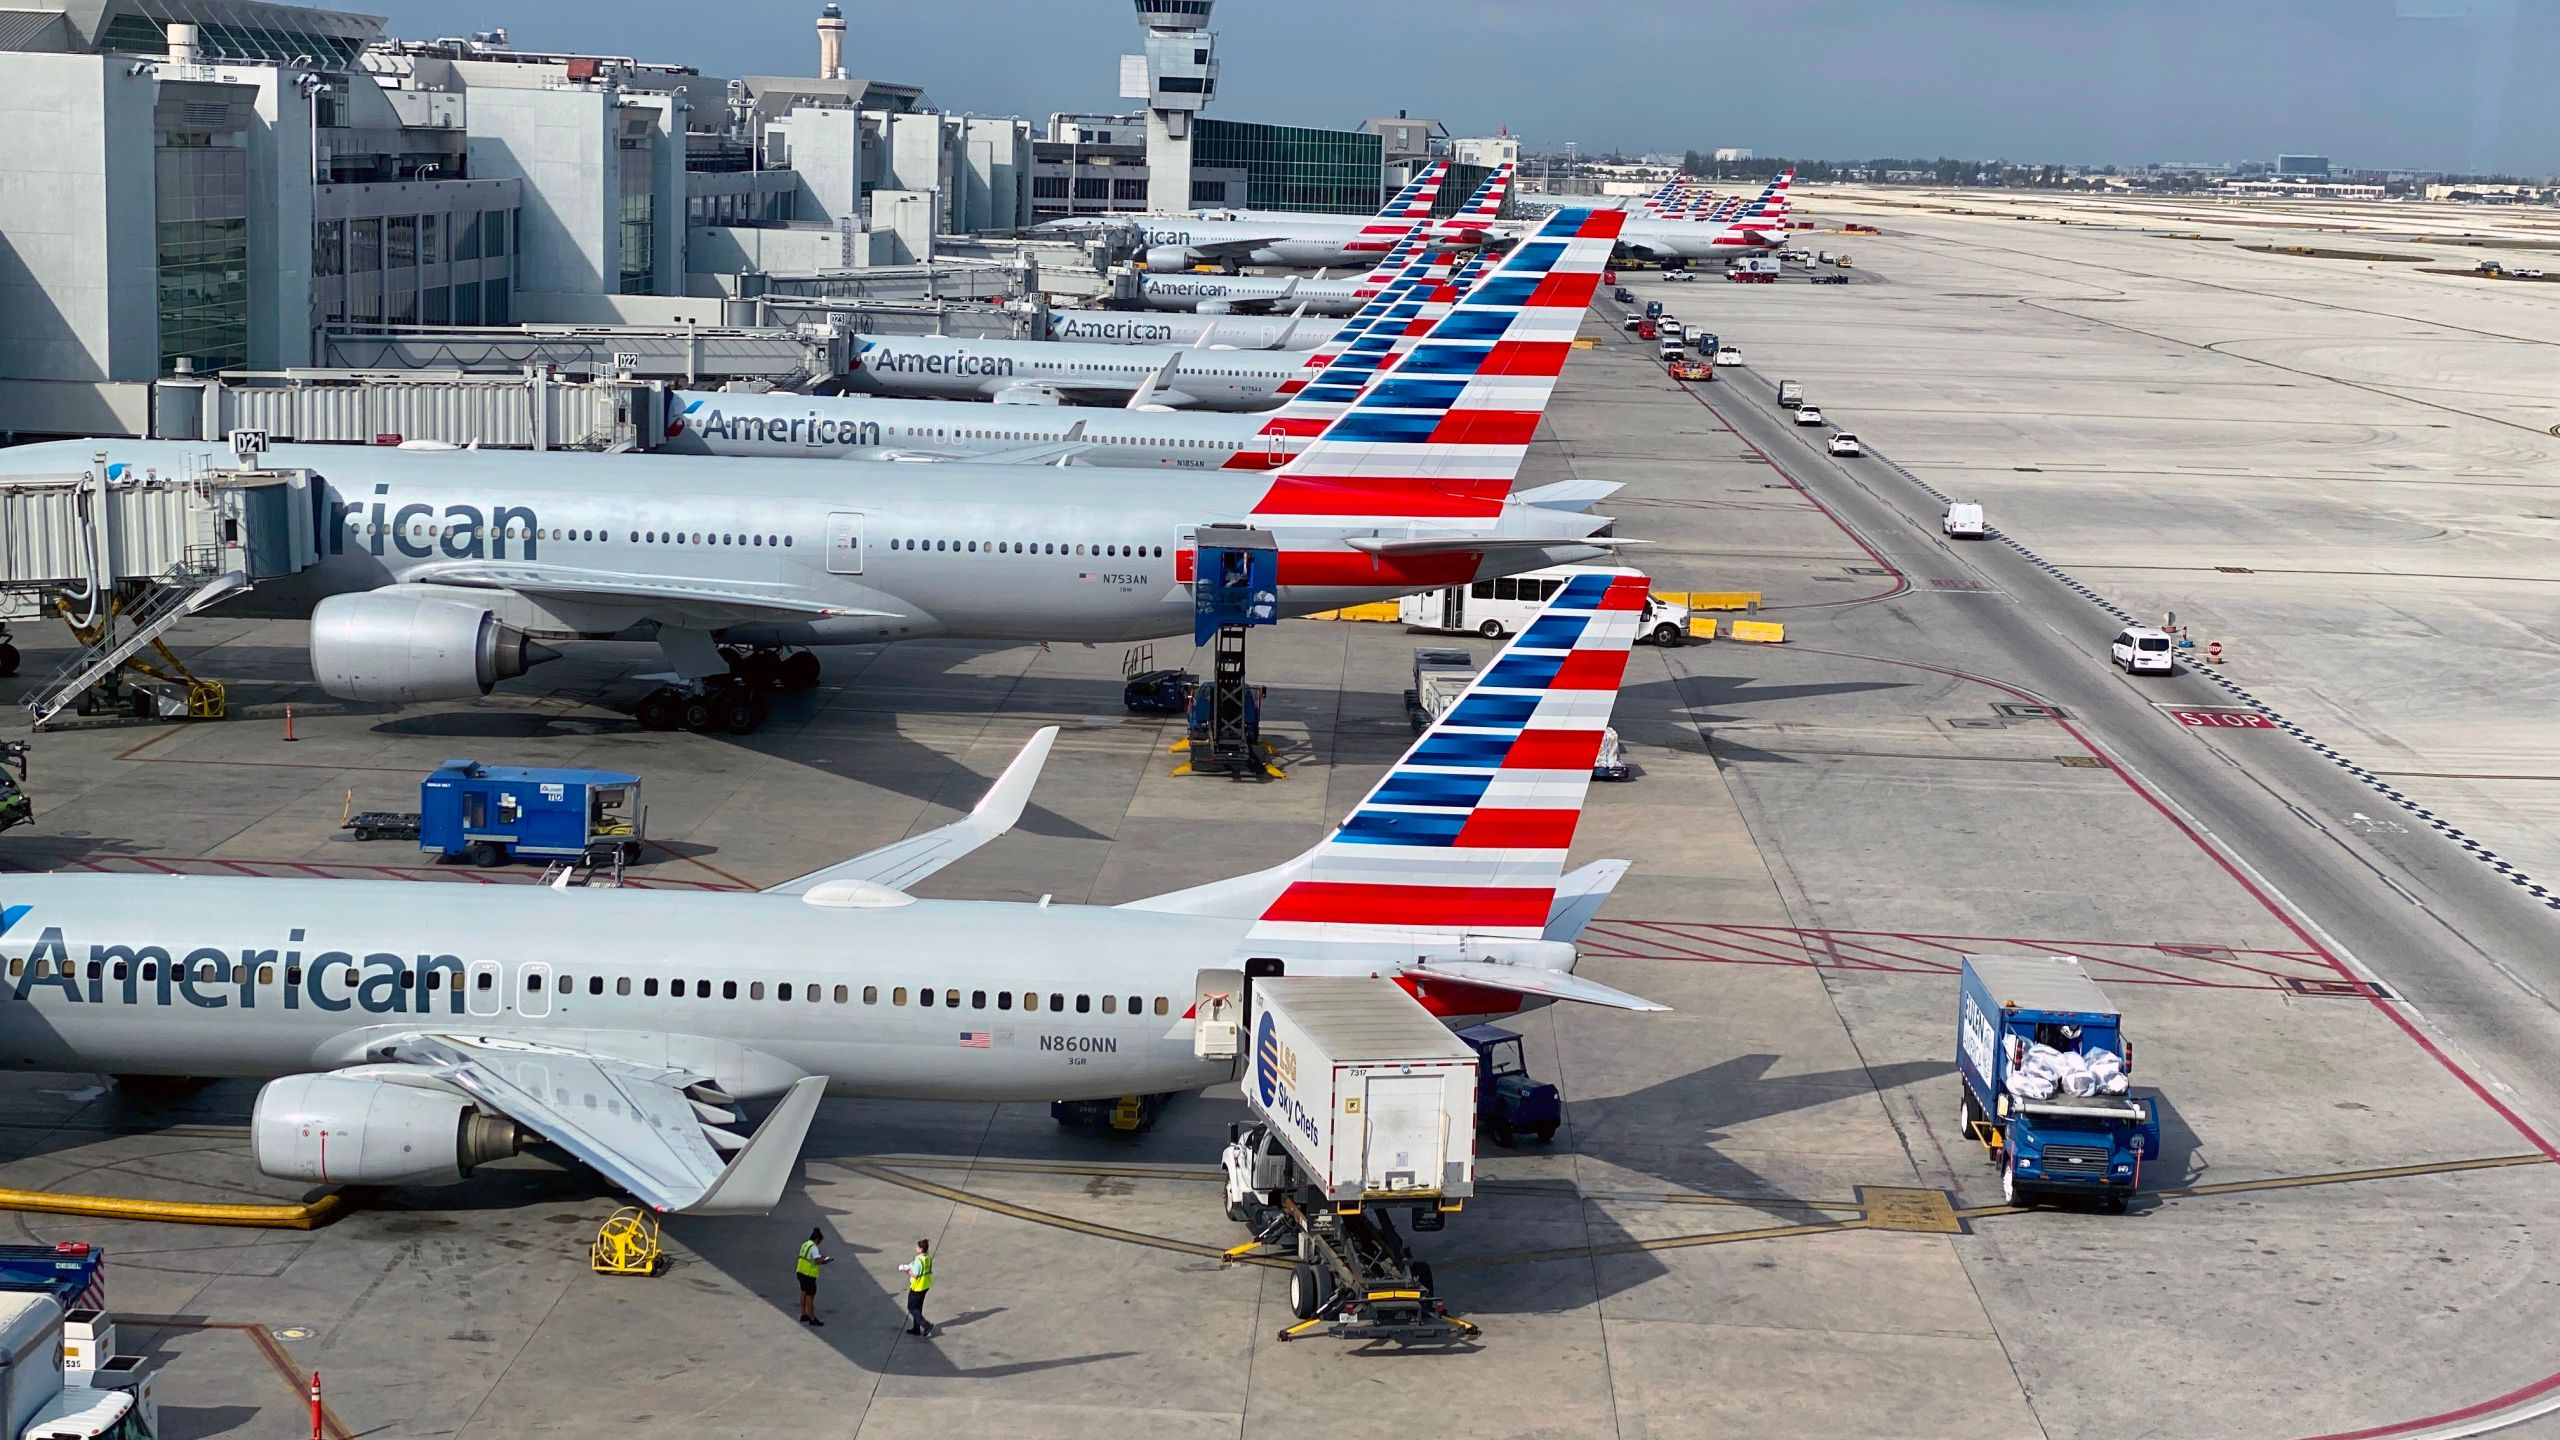 American Airlines planes are seen at Miami International Airport (MIA) on March 3, 2020, in Miami, Florida. (DANIEL SLIM/AFP via Getty Images)